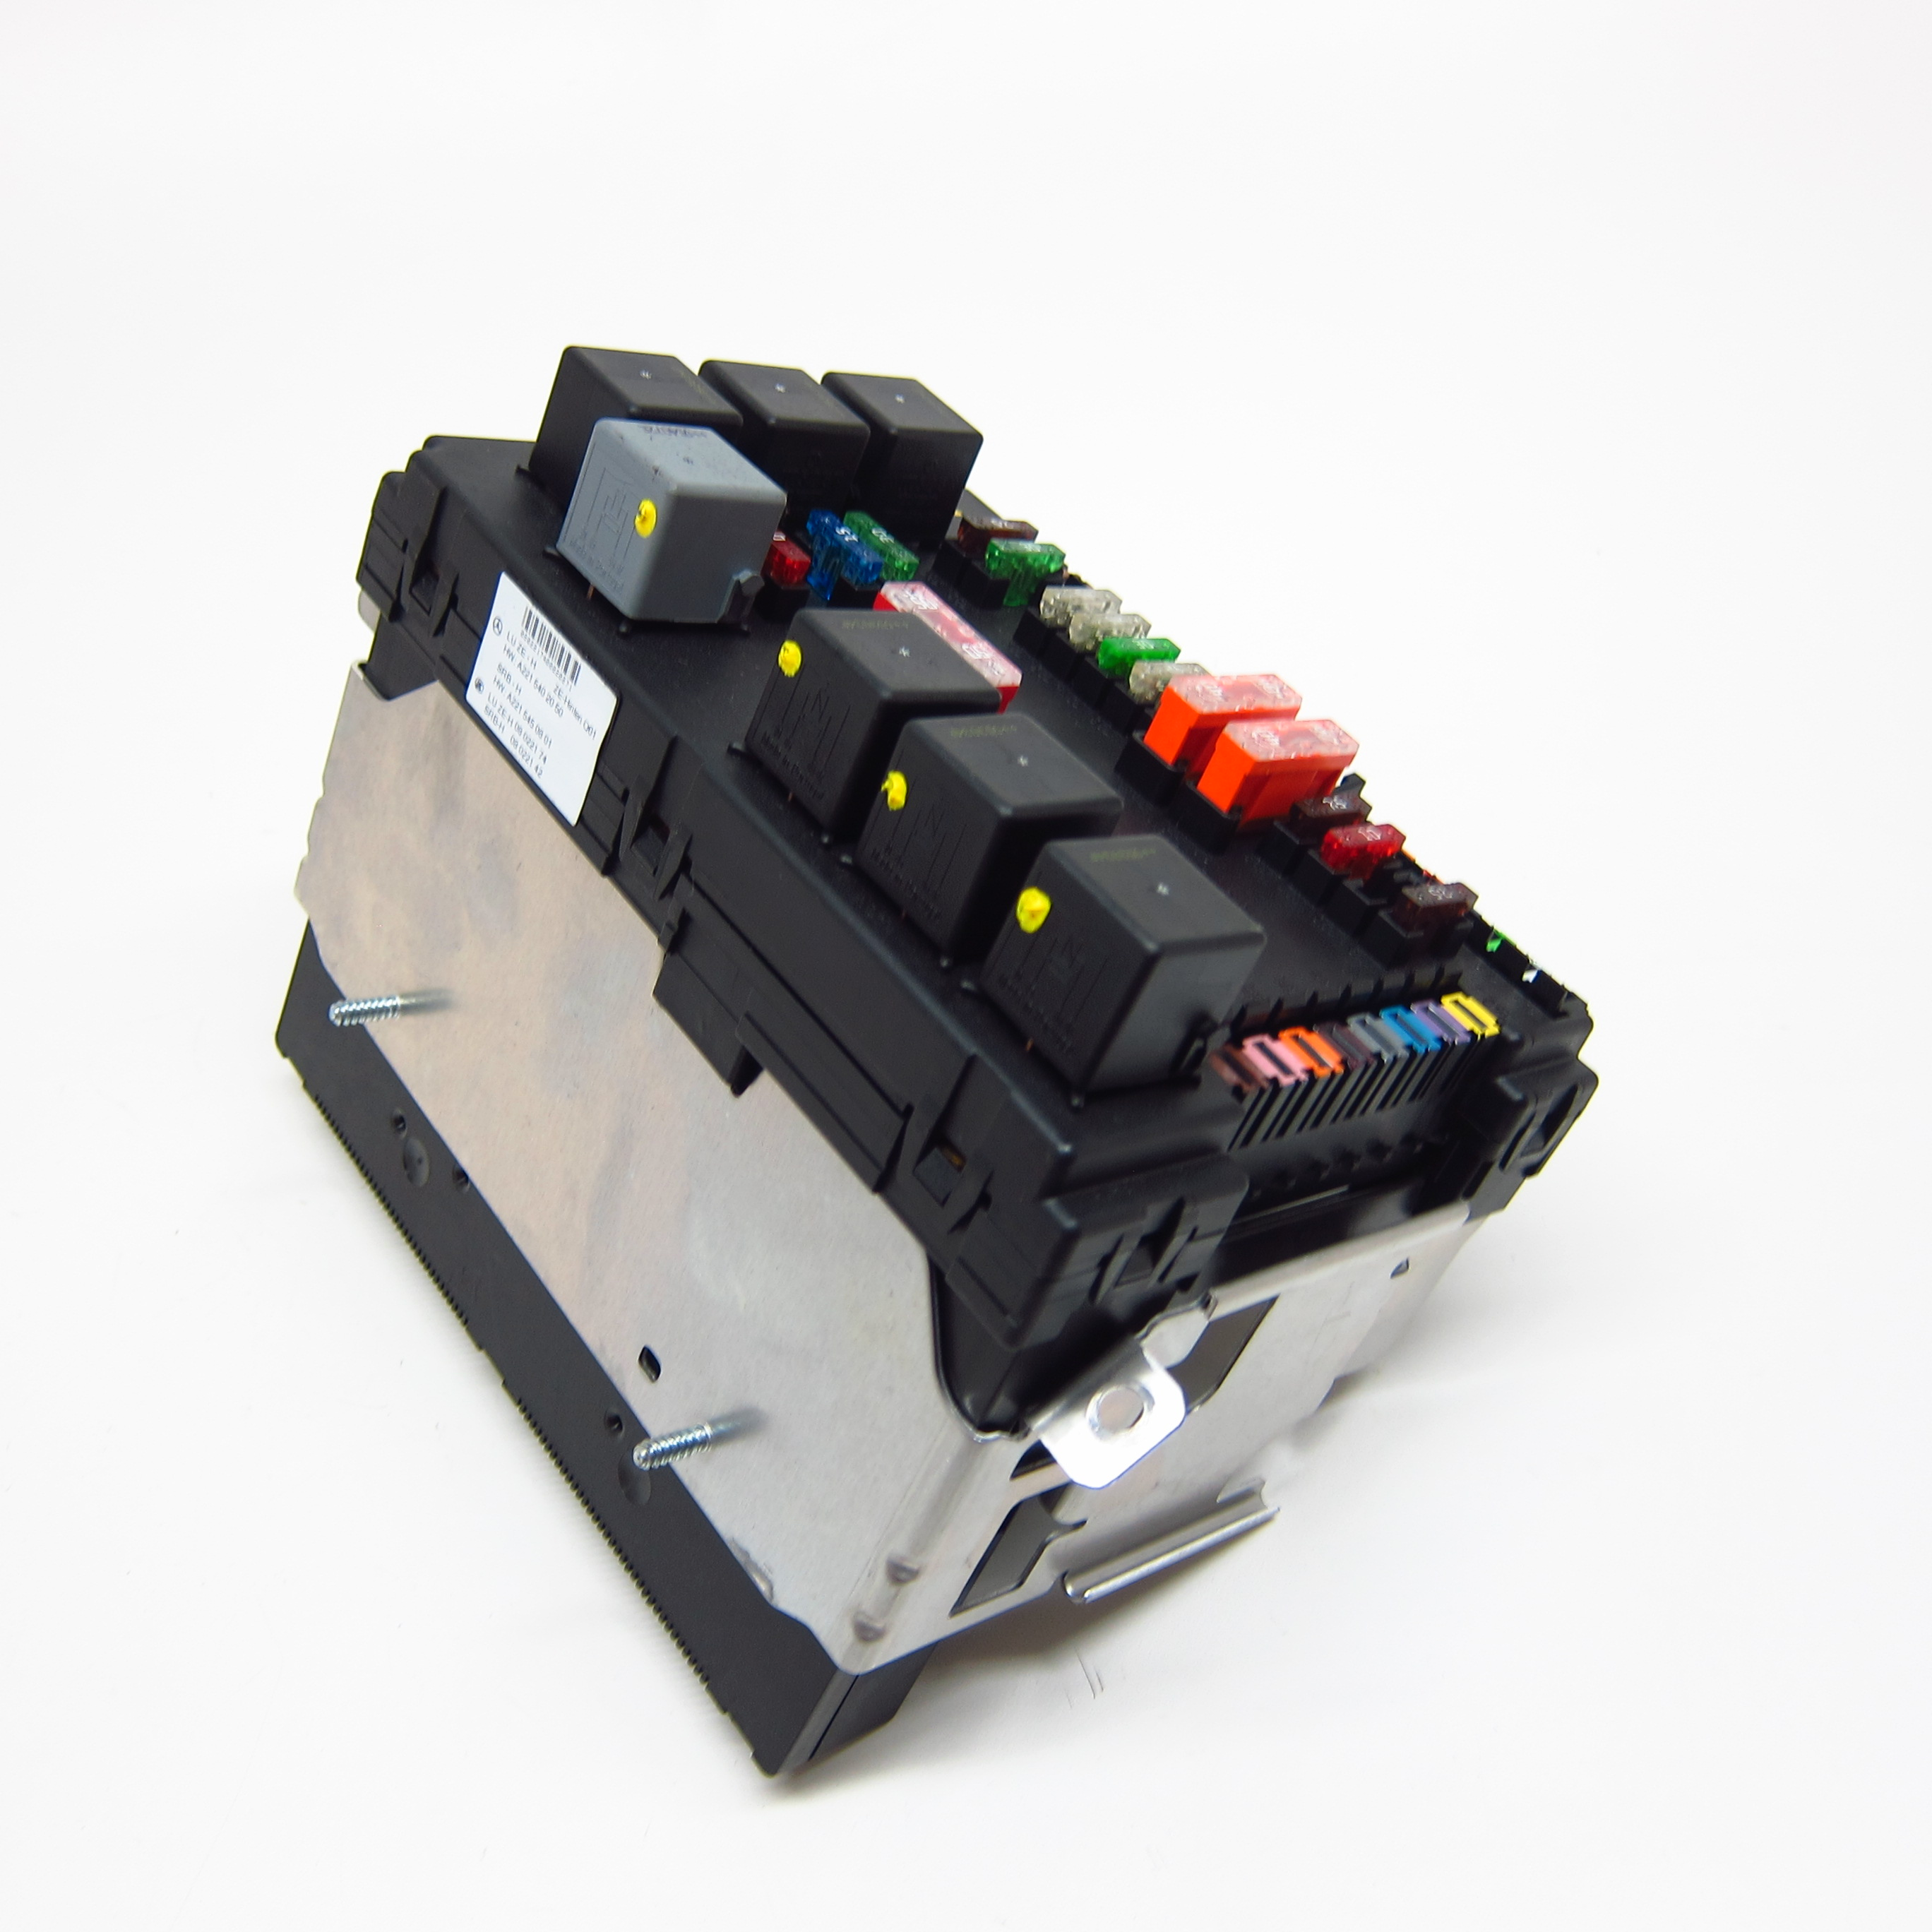 article description: fuse box